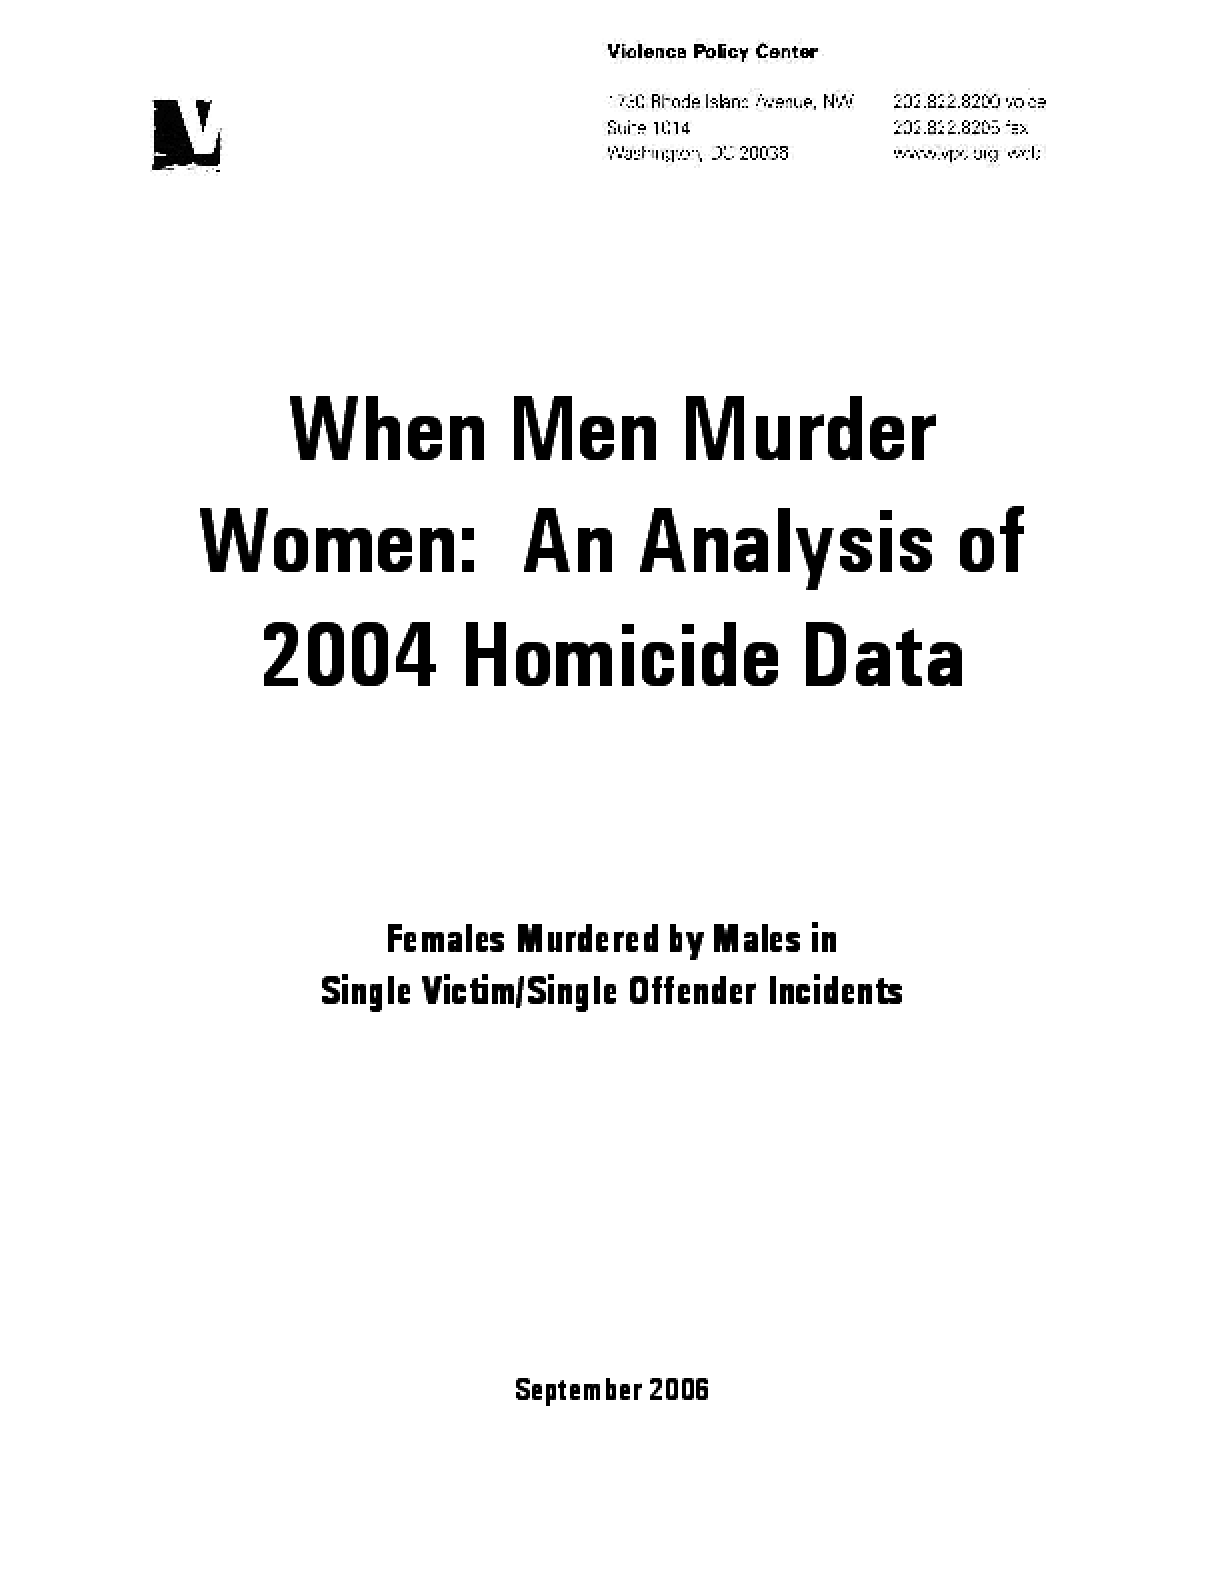 When Men Murder Women: An Analysis of 2004 Homicide Data